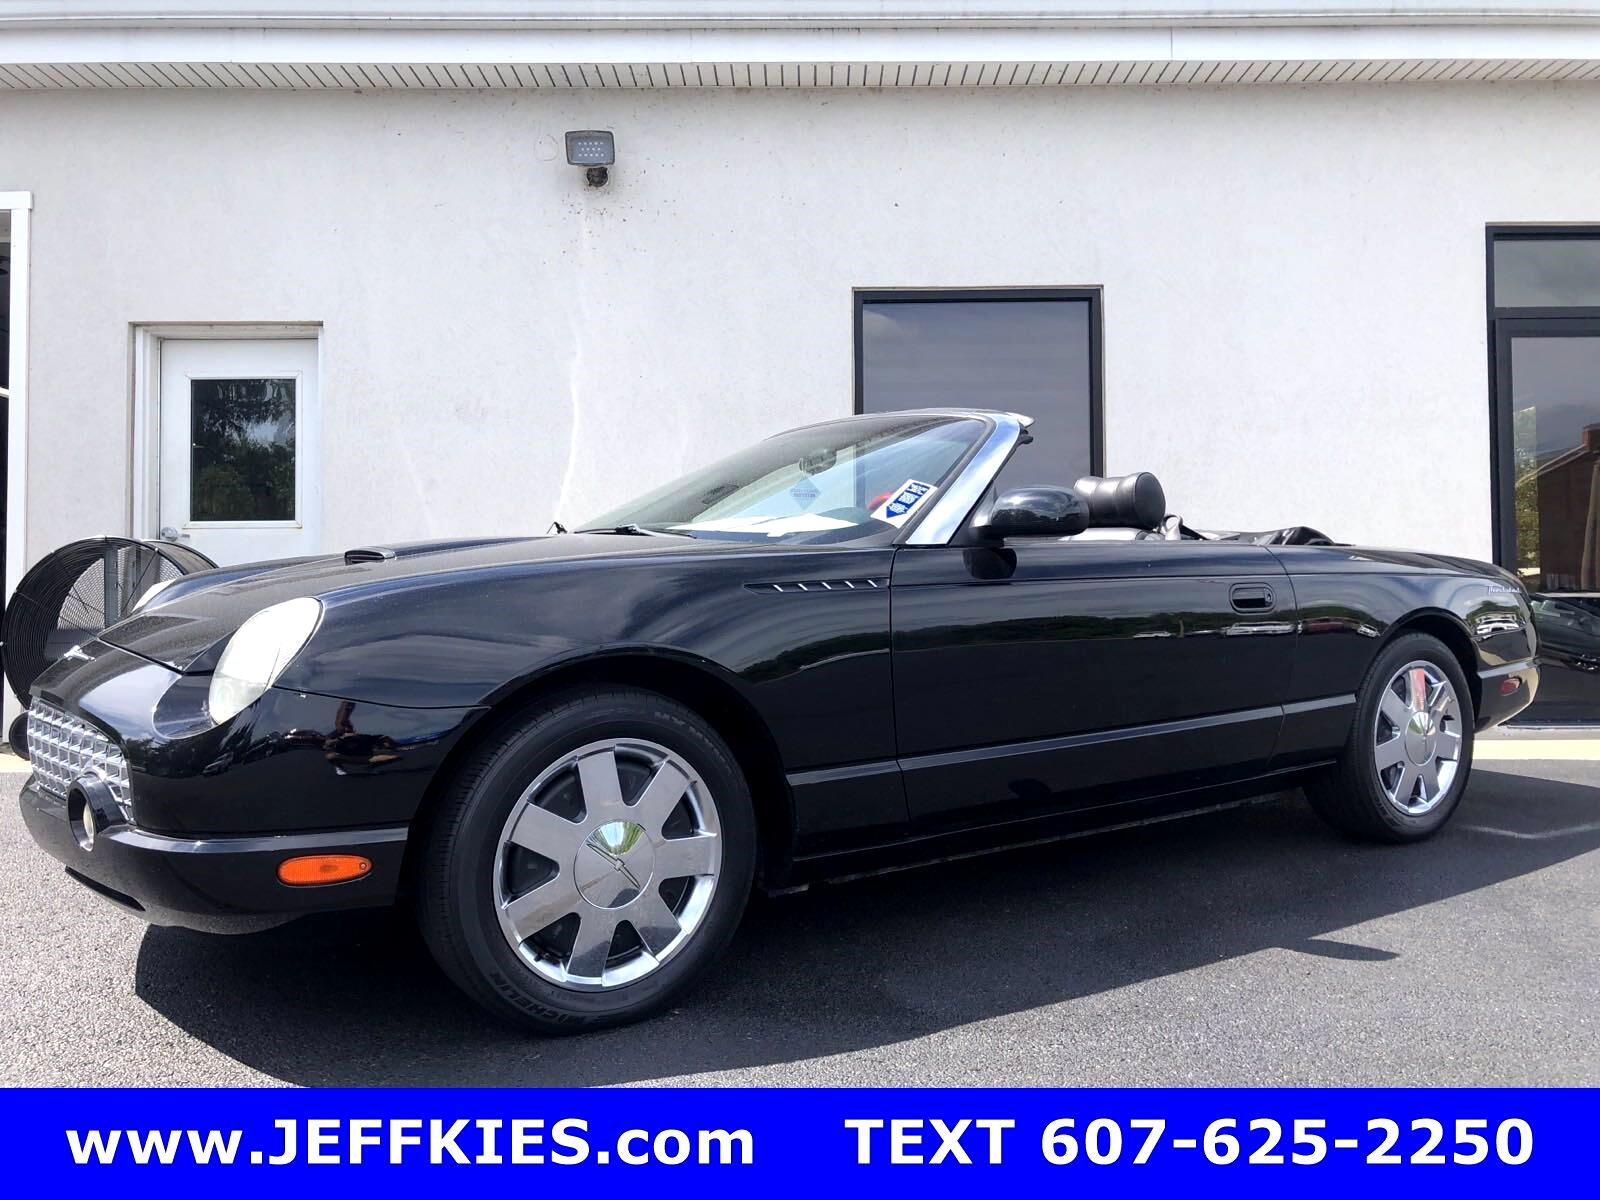 Ford Thunderbird Deluxe 2002